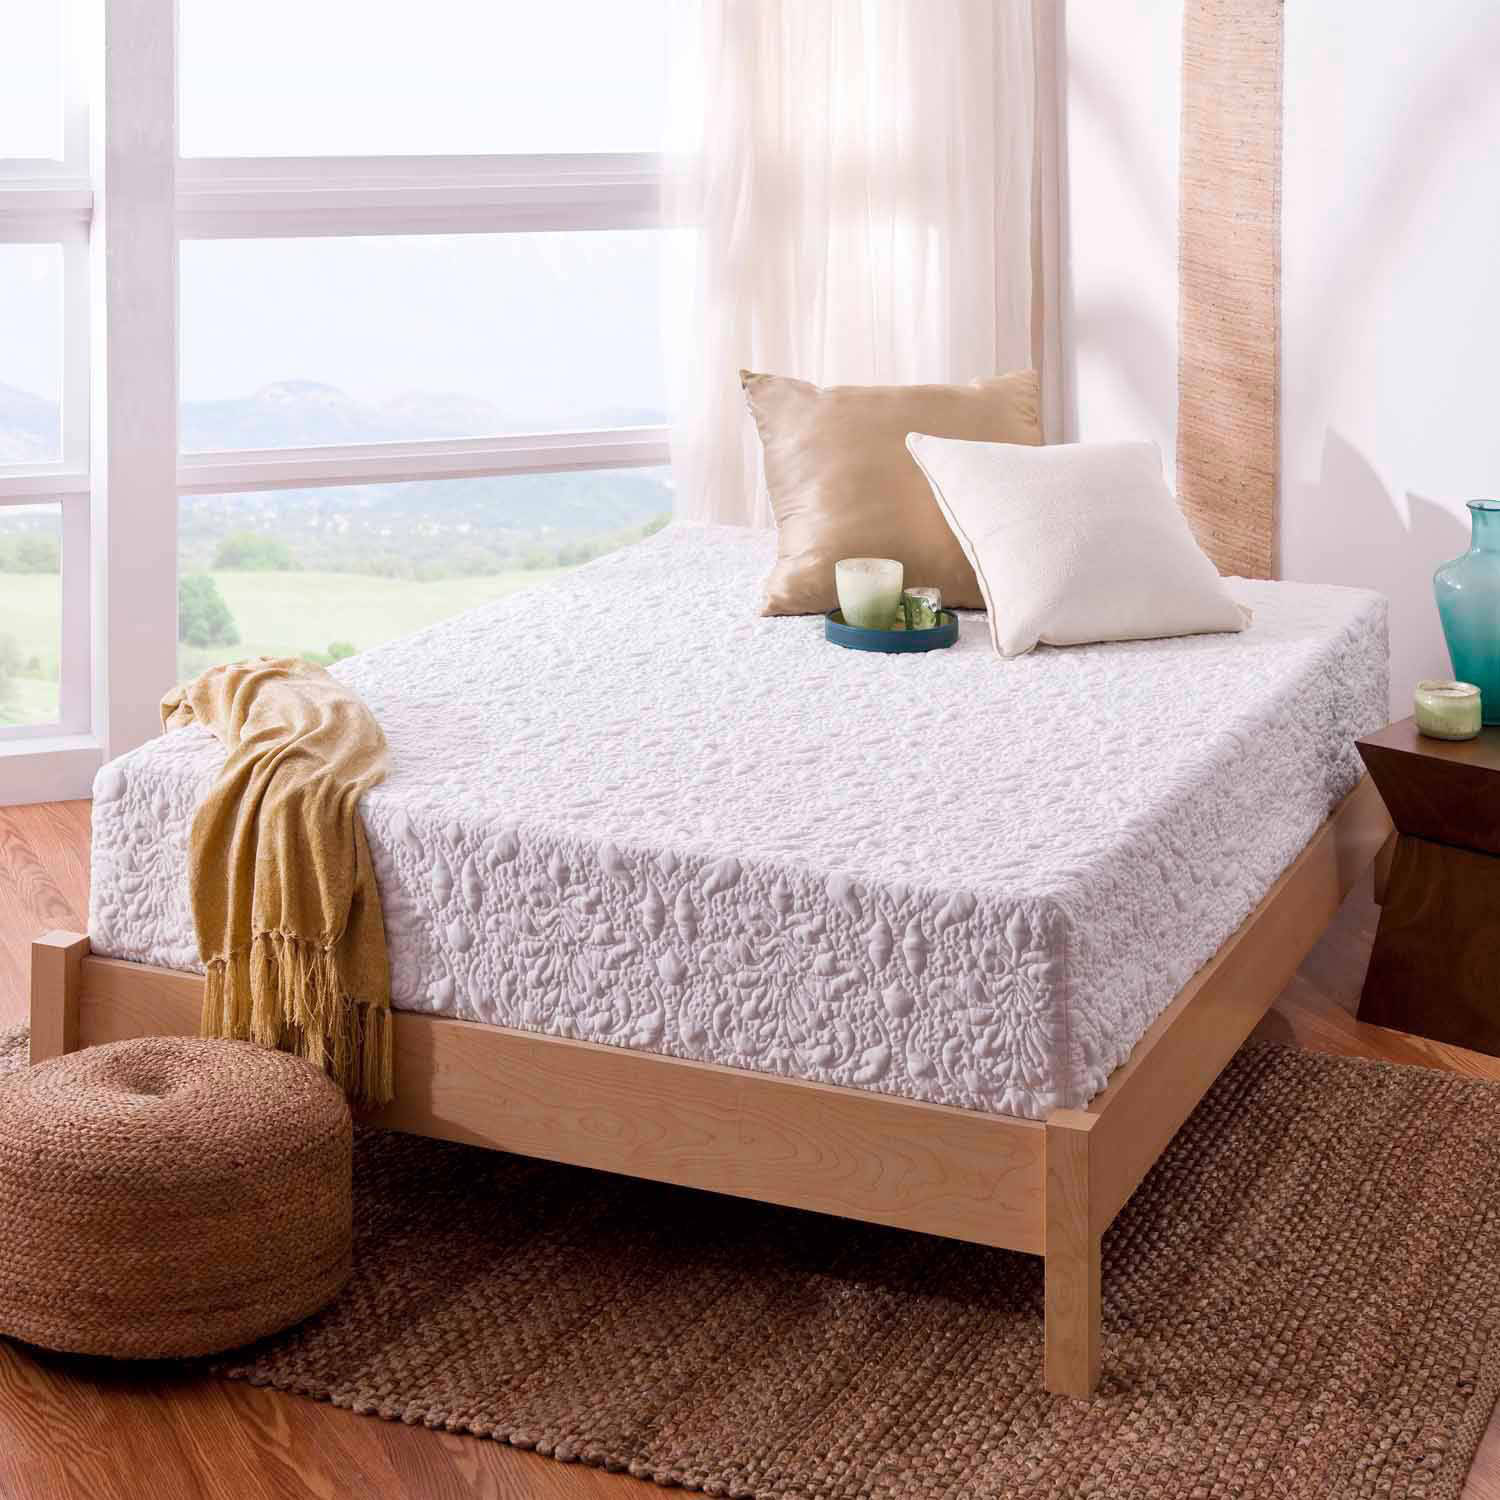 Cool Spa Sensations Theratouch Memory Foam Mattress Multiple Sizes Walmart